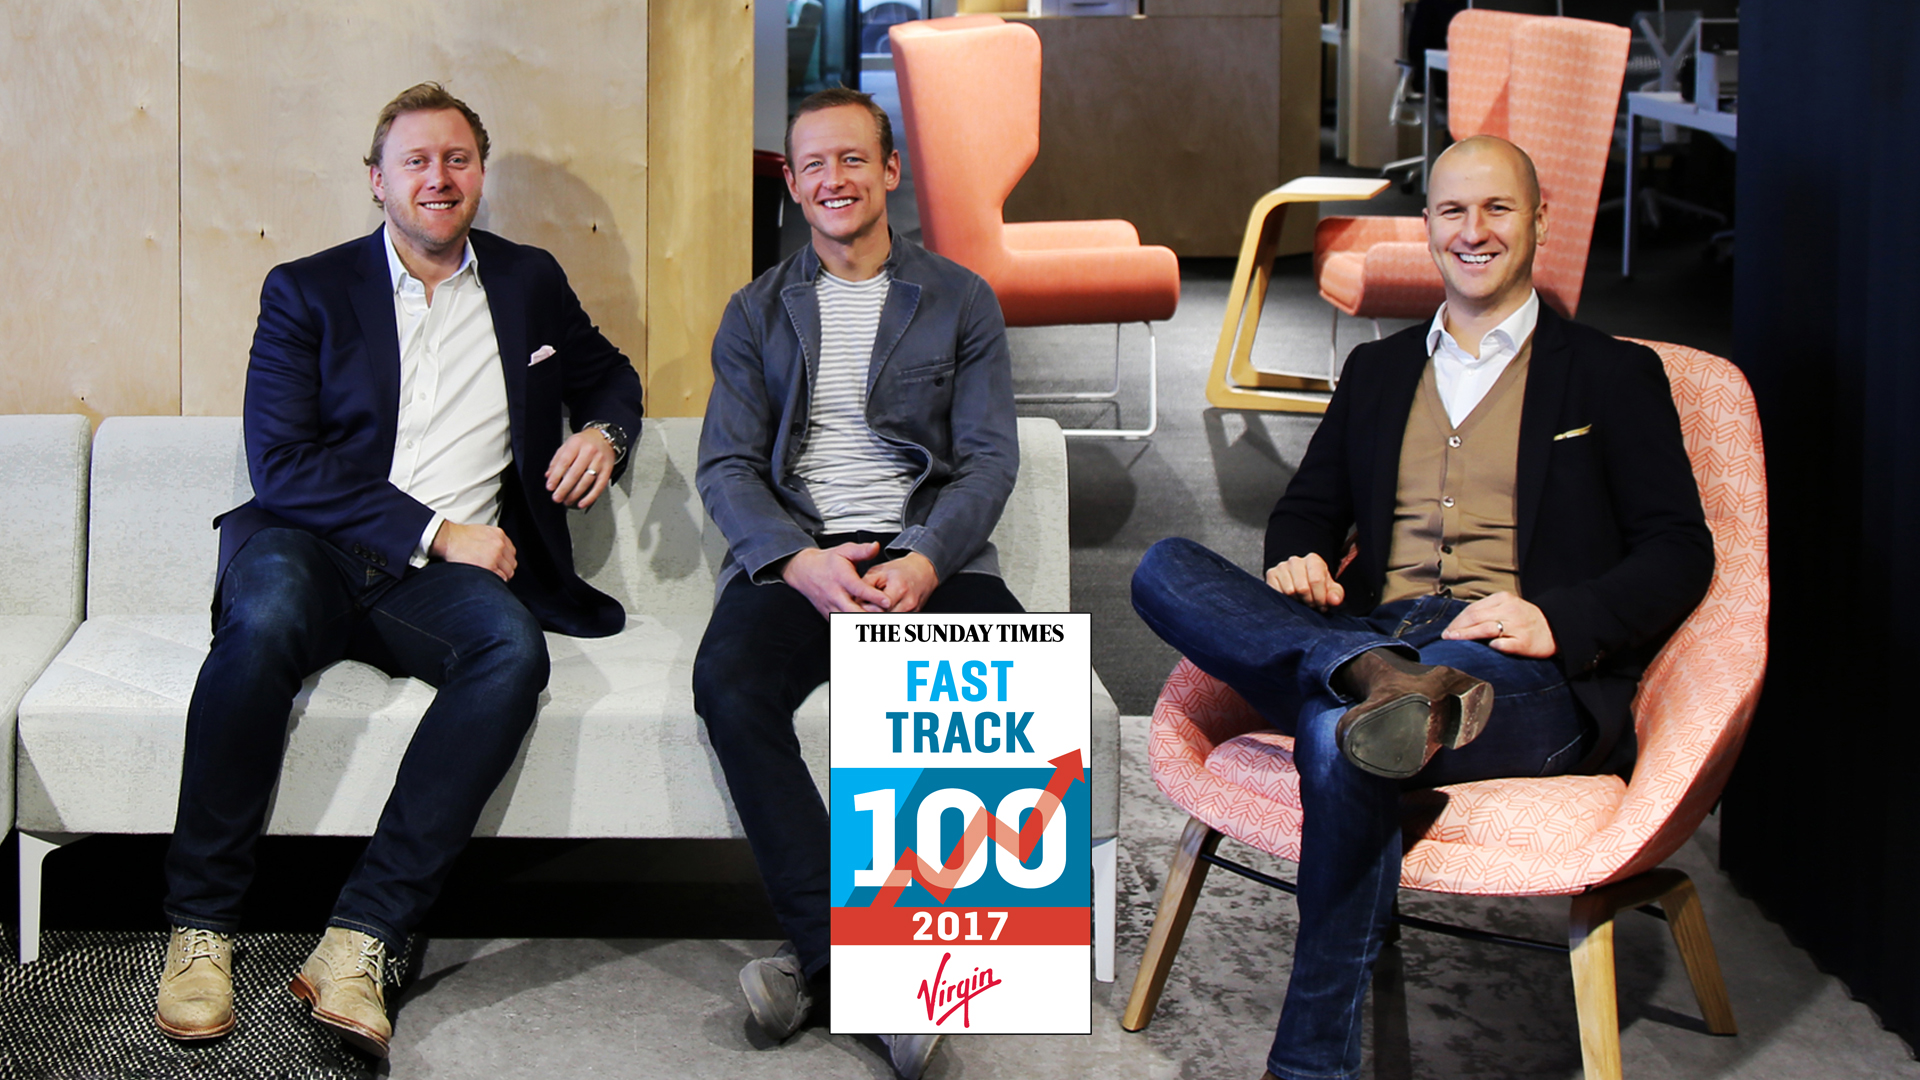 naughtone placed number 39 in Sunday Times Virgin Fast Track 100